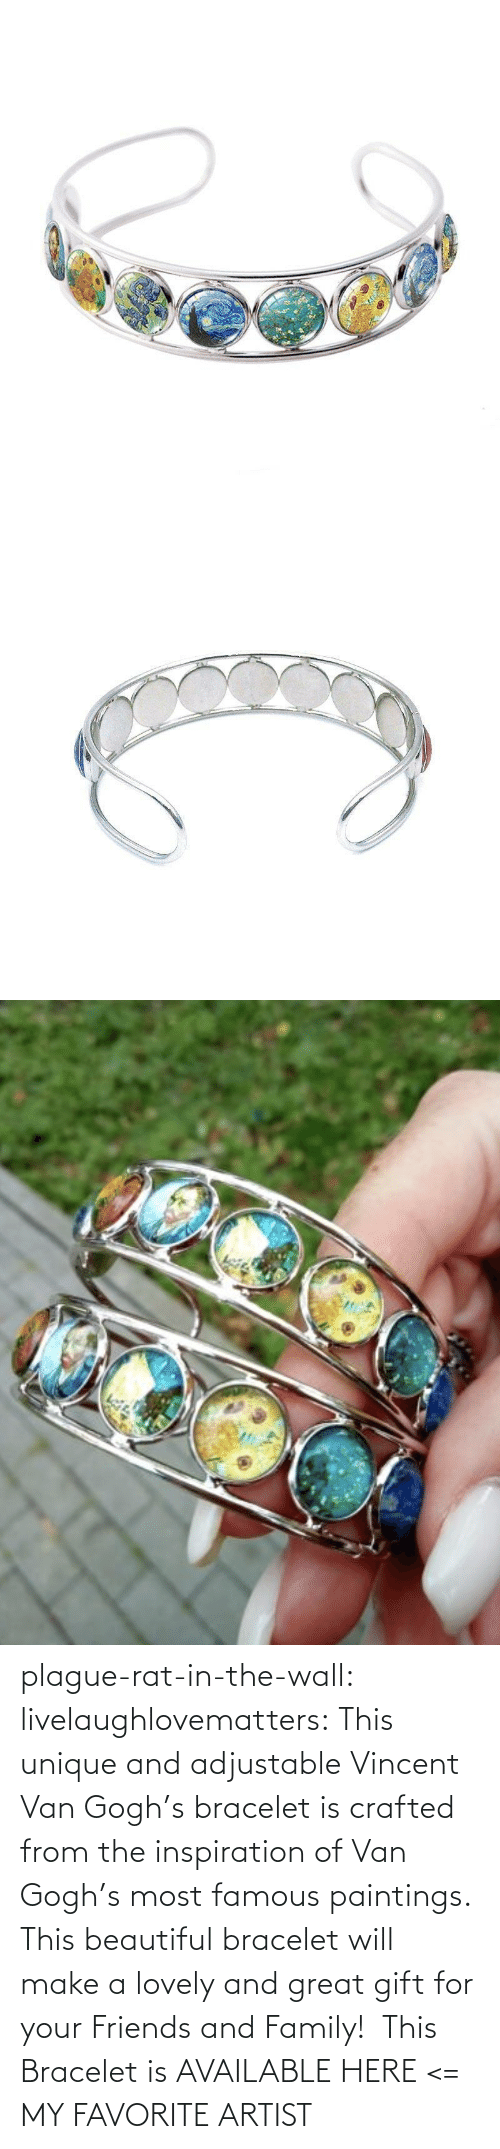 products: plague-rat-in-the-wall:  livelaughlovematters: This unique and adjustable Vincent Van Gogh's bracelet is crafted from the inspiration of Van Gogh's most famous paintings. This beautiful bracelet will make a lovely and great gift for your Friends and Family!  This Bracelet is AVAILABLE HERE <=  MY FAVORITE ARTIST